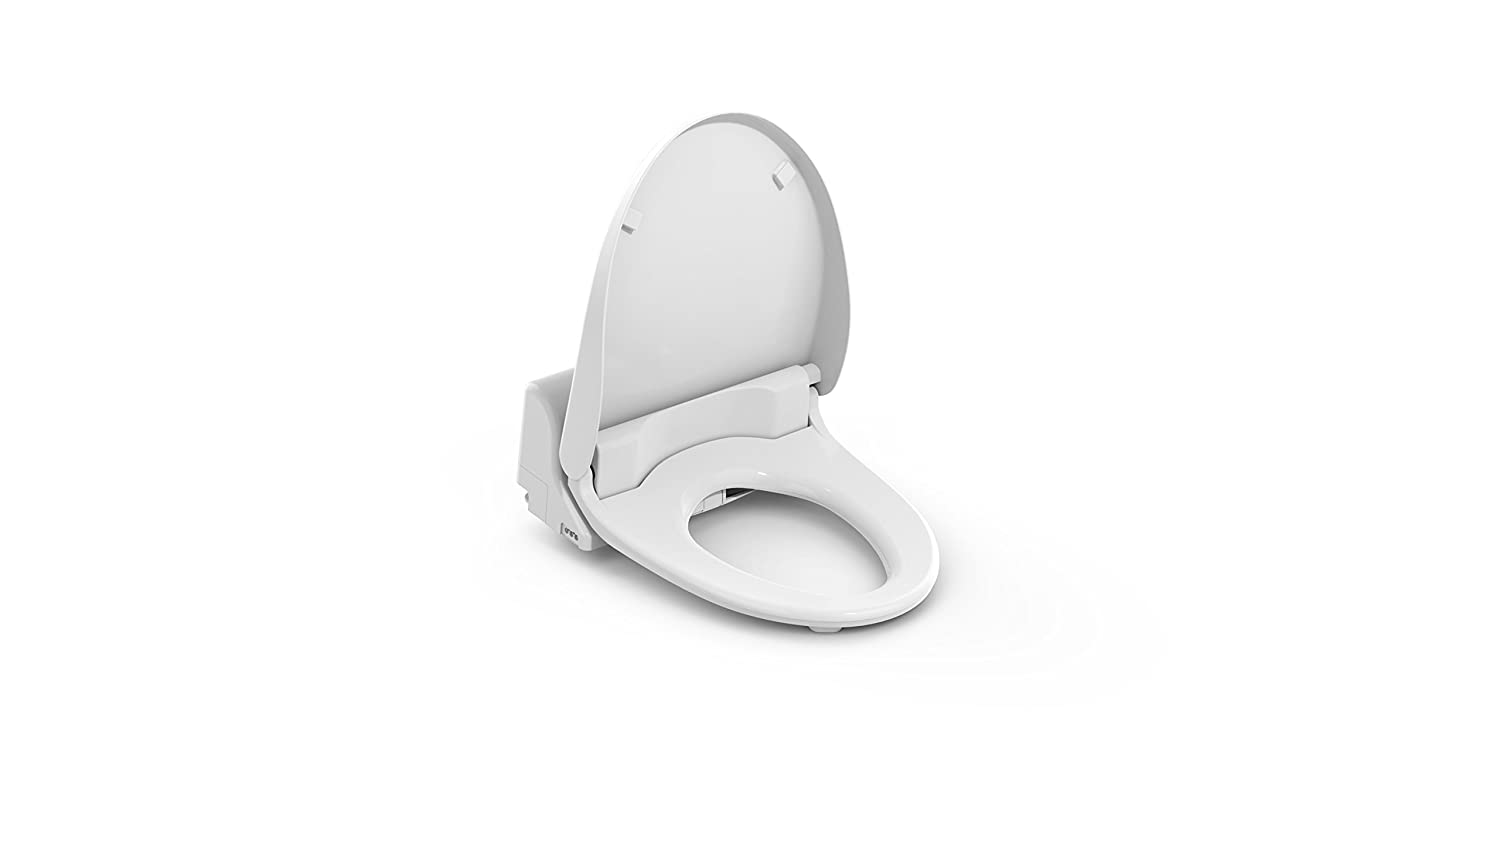 Buy TOTO SW532#01 Washlet B150 Online at Low Prices in India - Amazon.in